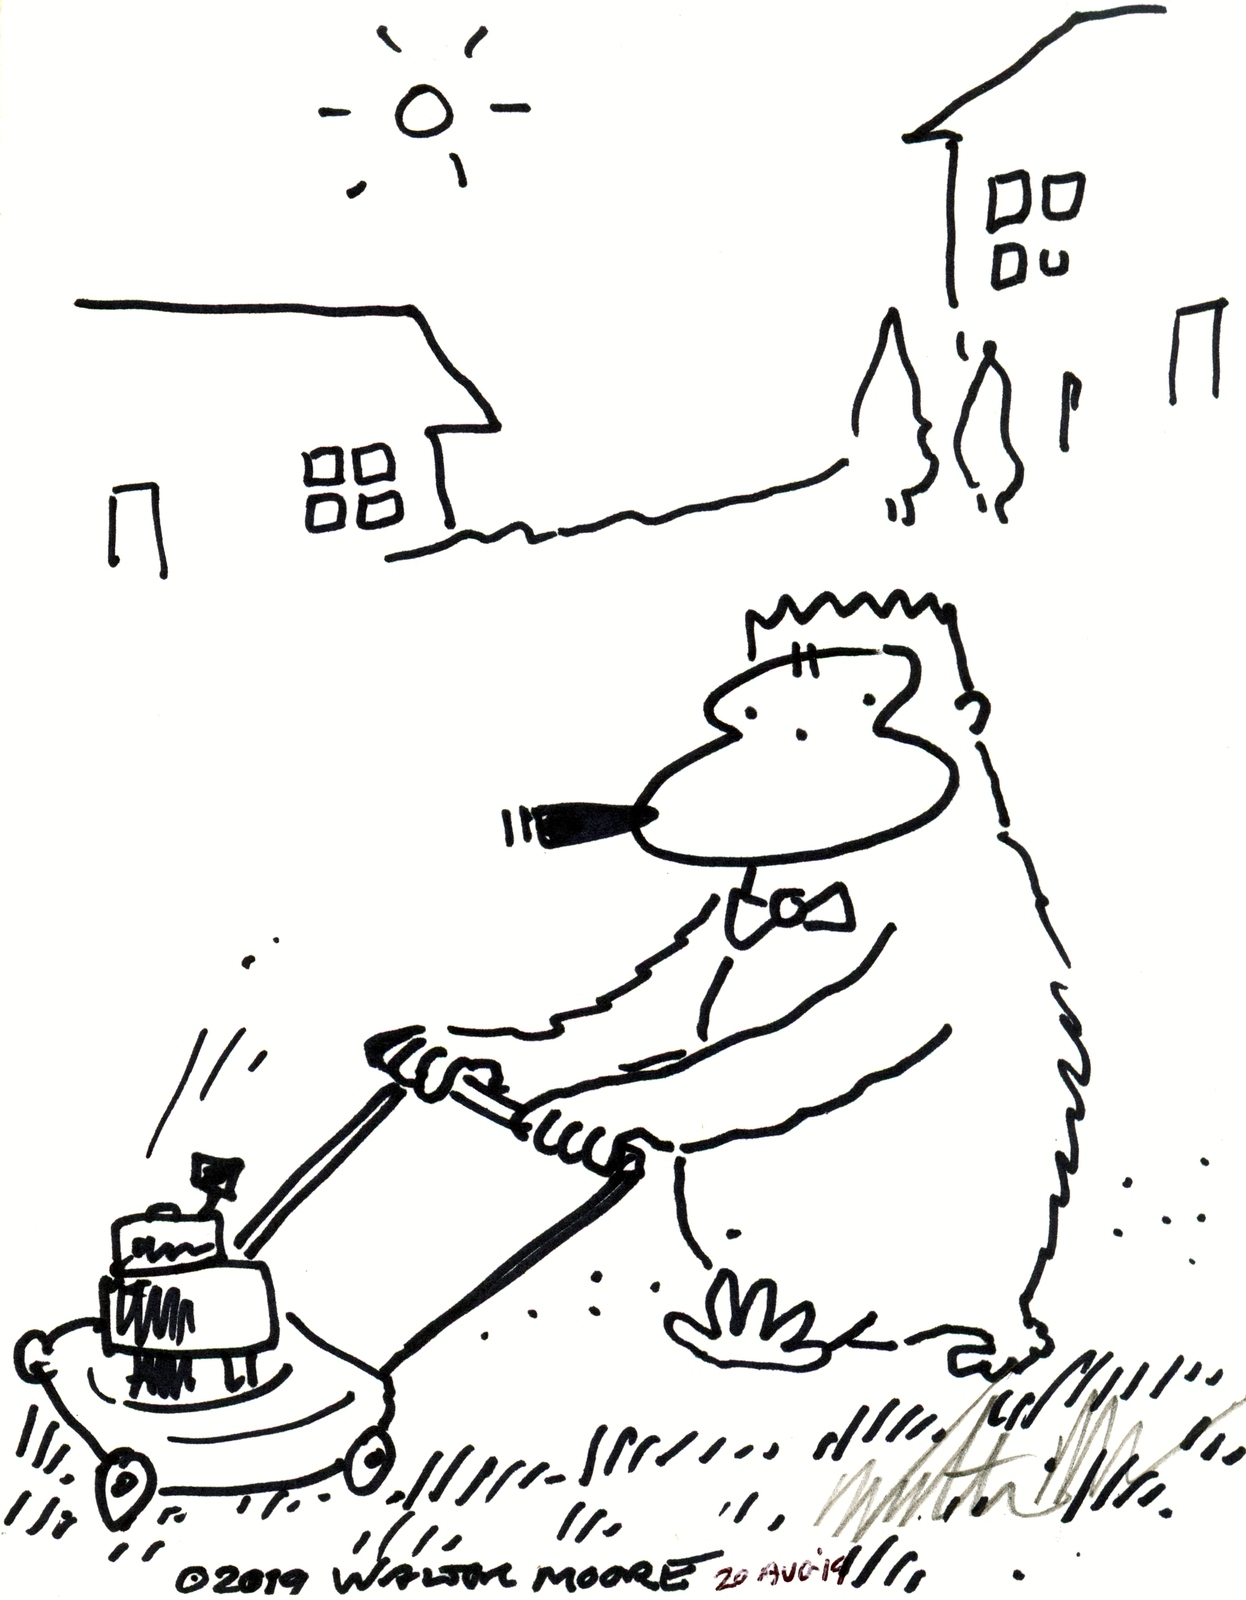 Primary image for Cigar Ape Pushes Lawnmower. Original Signed Cartoon Art by Walter Moore